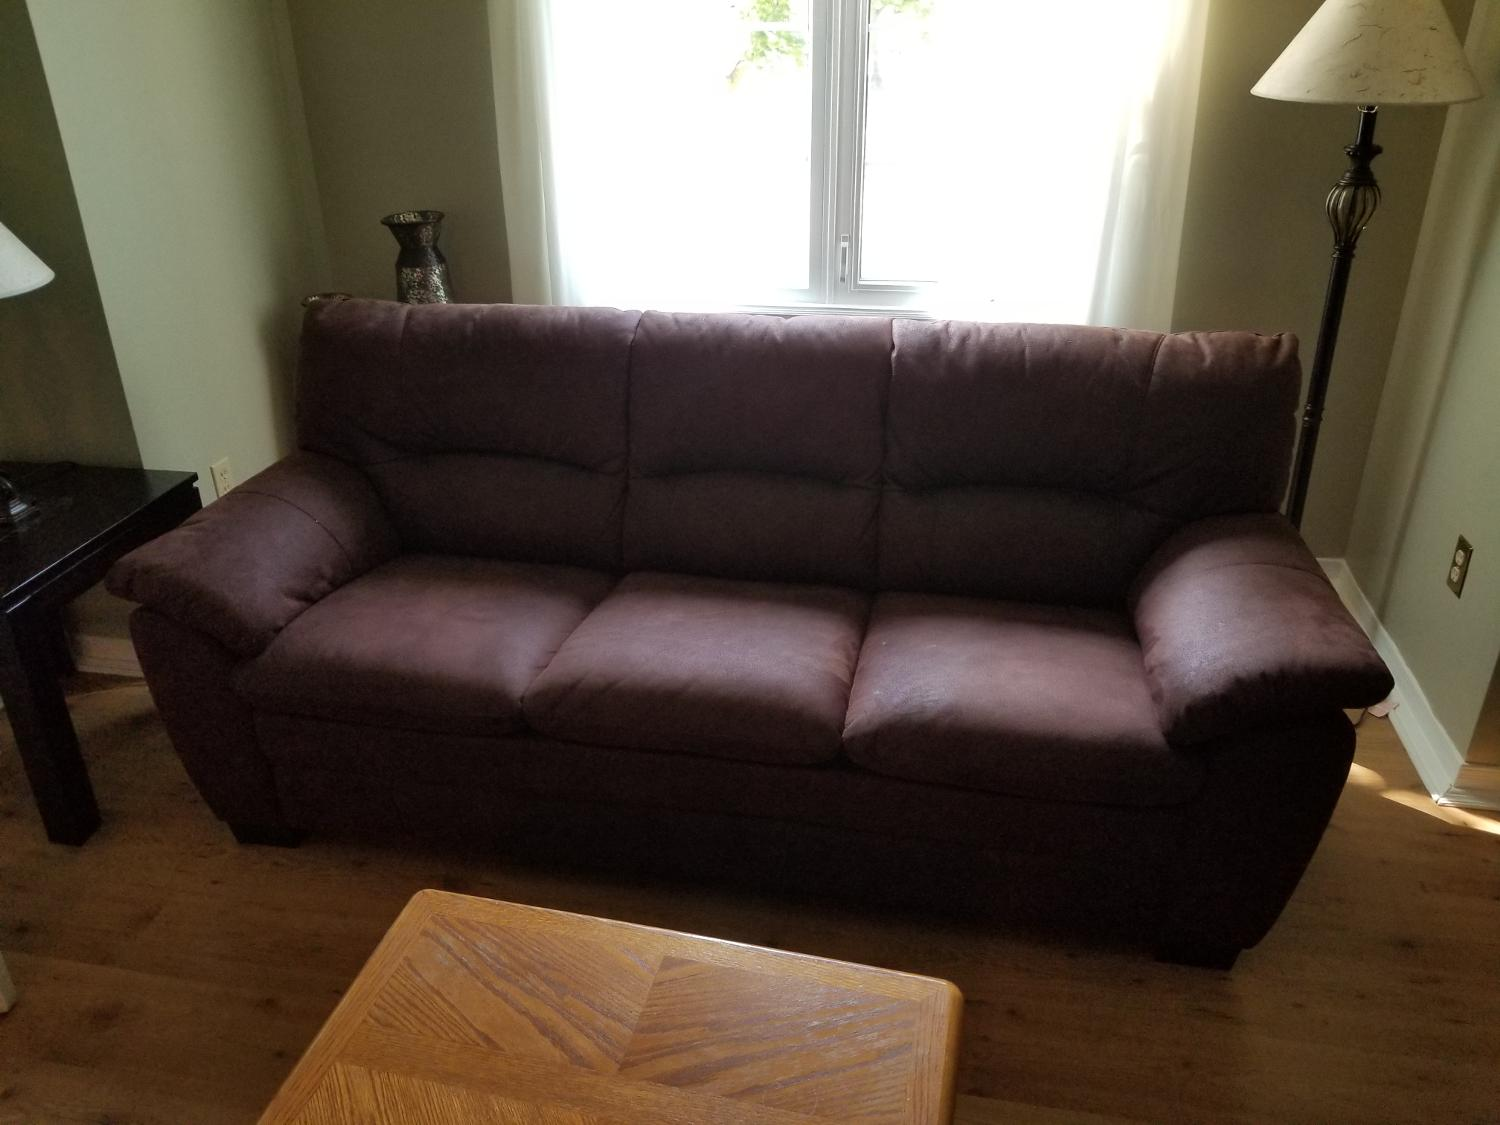 Chocolate brown, micro suede couch and chair 6 months old in excellent  condition. Must sell today moving. $1200